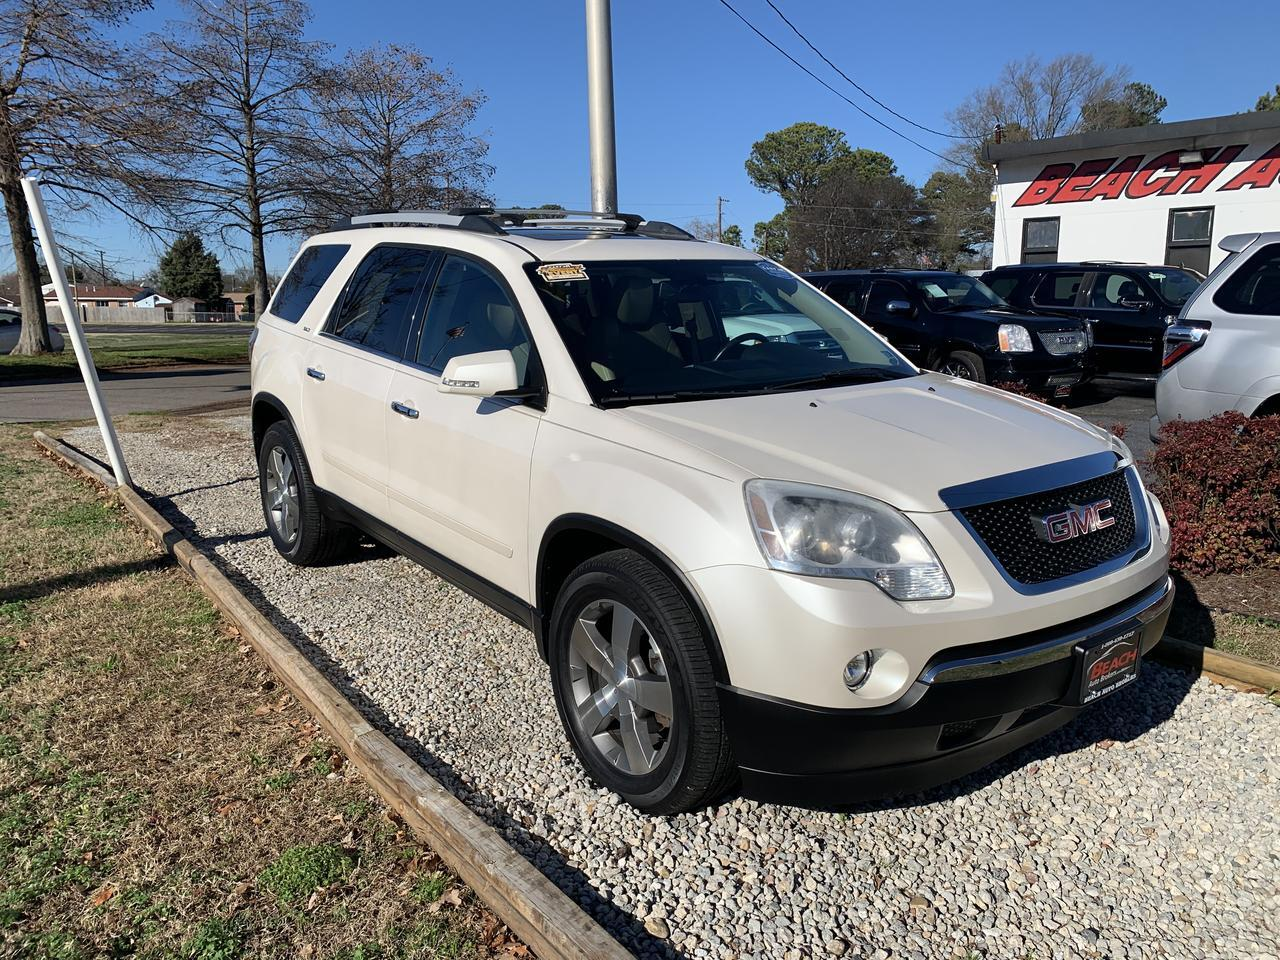 2012 GMC ACADIA SLT1, WARRANTY, LEATHER, 3RD ROW, SUNROOF, CAPTAIN'S CHAIRS, BACKUP CAM, SUNROOF, HEATED SEATS! Norfolk VA